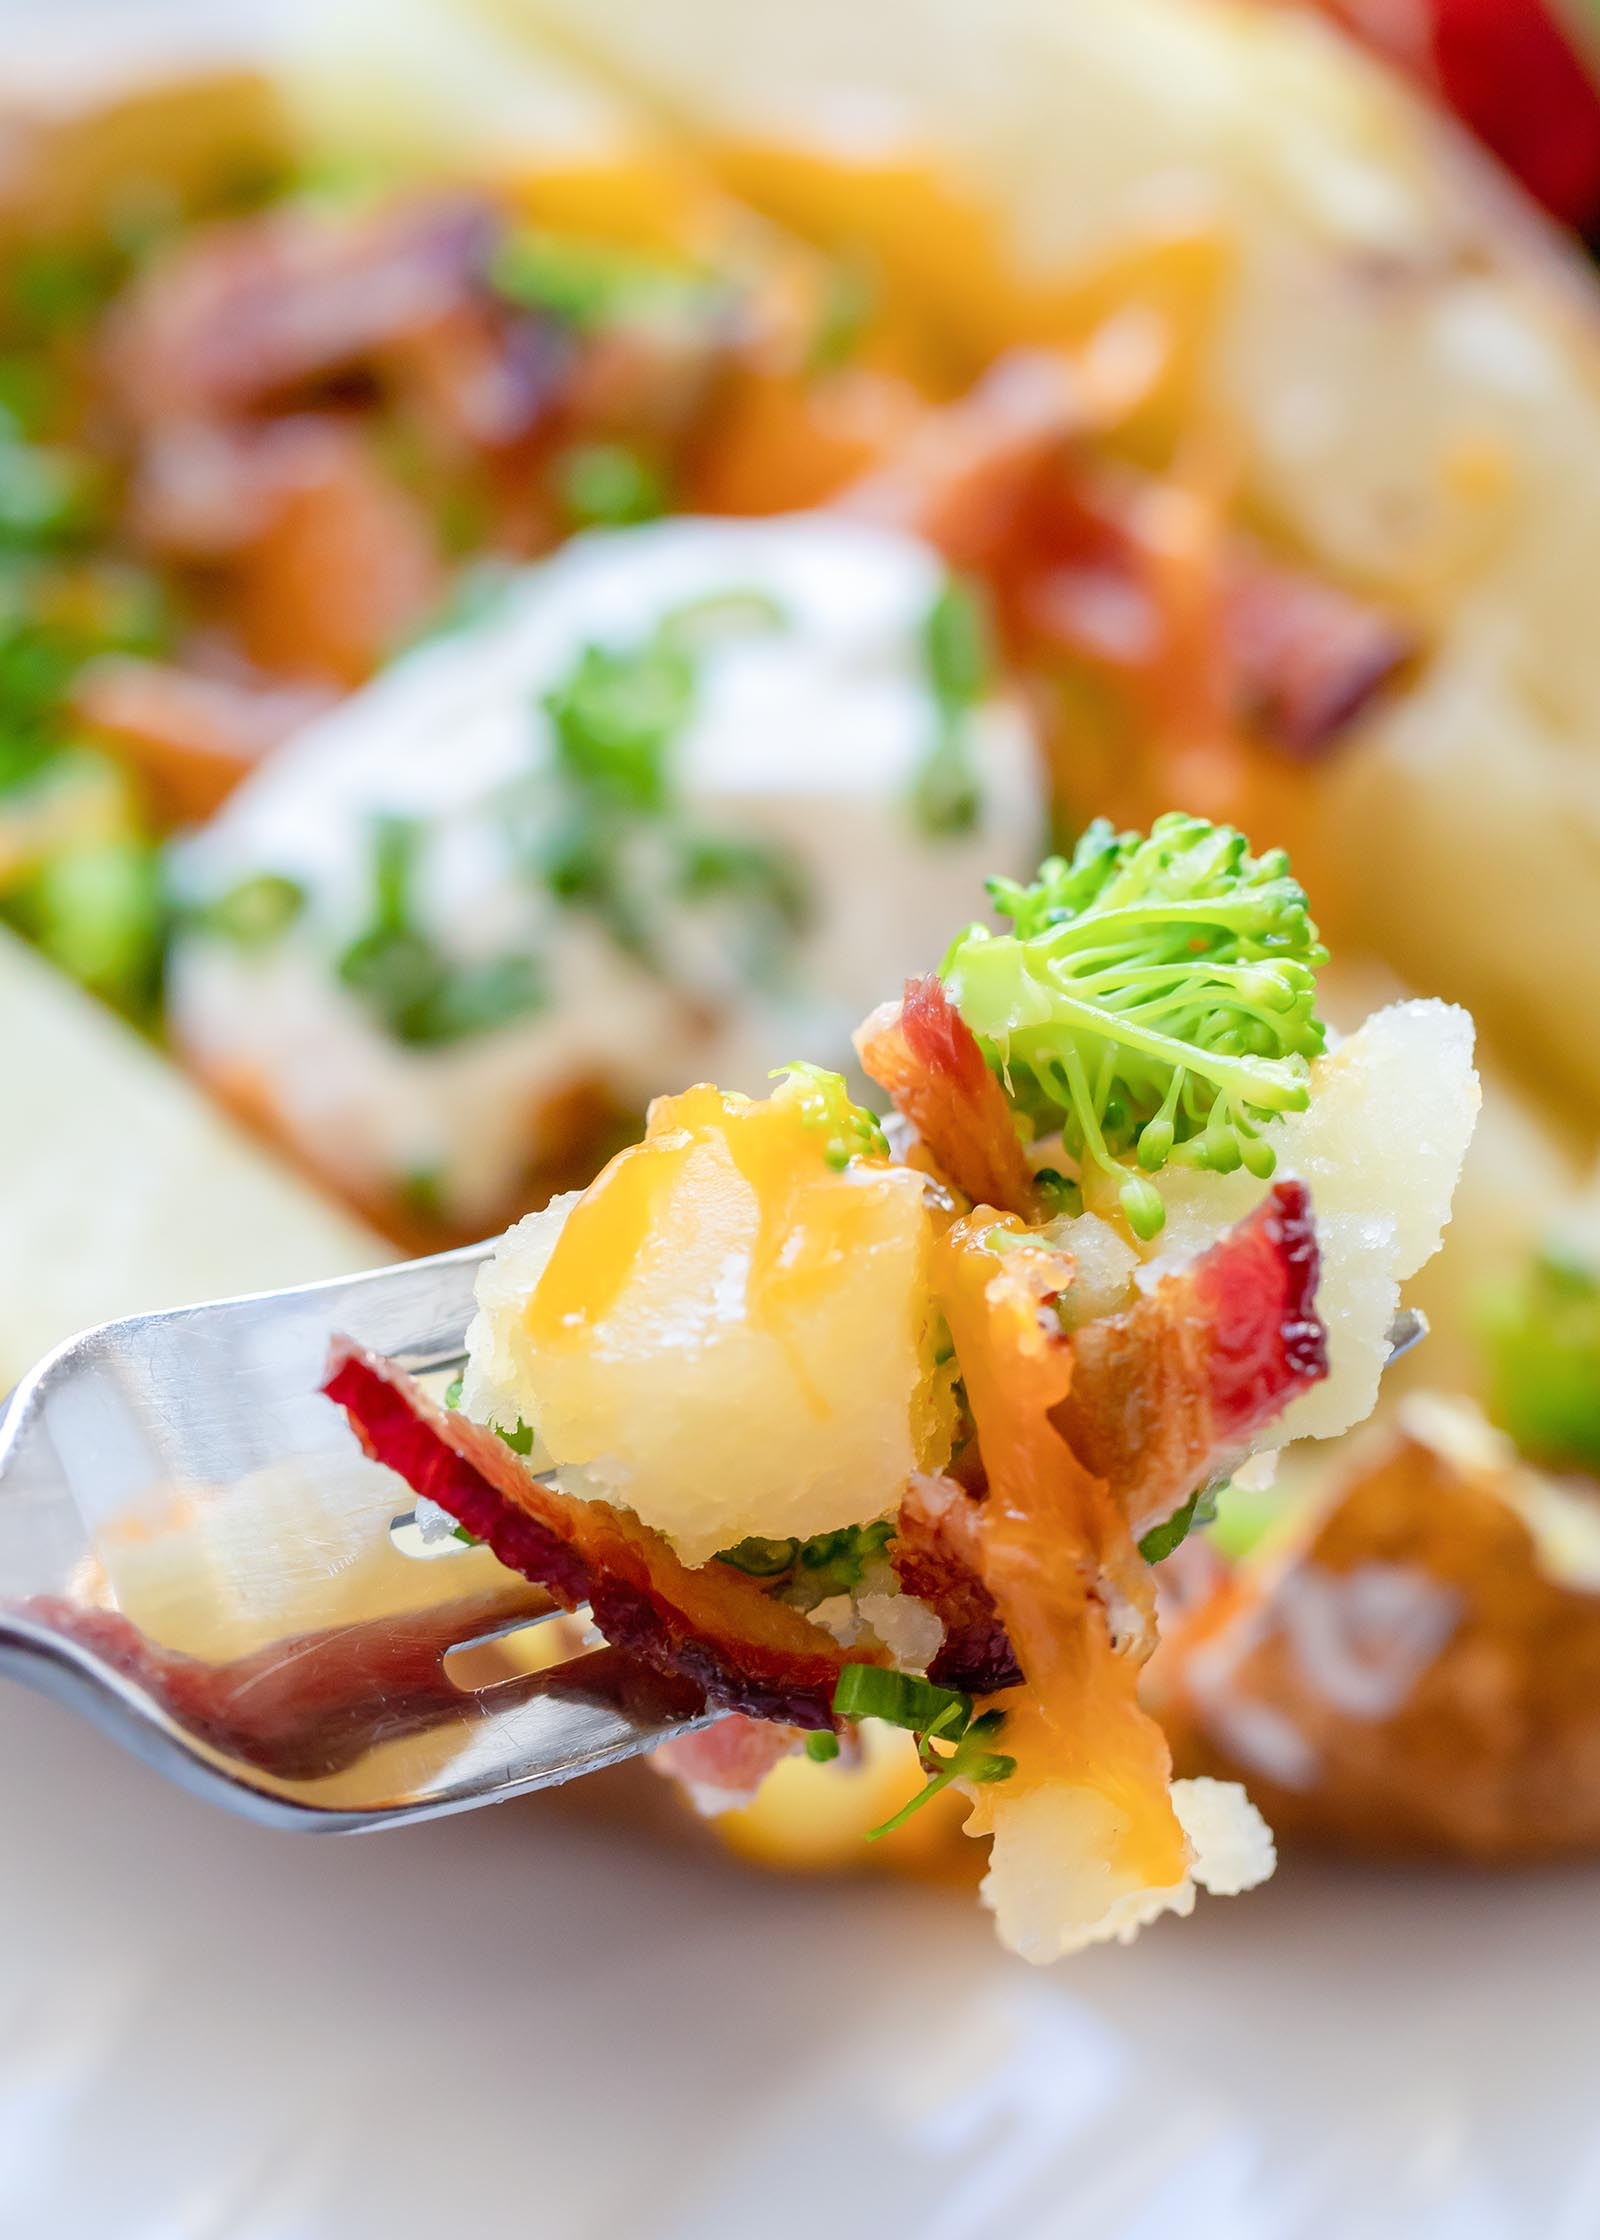 A broccoli and bacon loaded baked potato is in the background and a fork is holding up a bite of the potato. Broccoli, chopped bacon and cheddar cheese are visible along with the creamy potato.